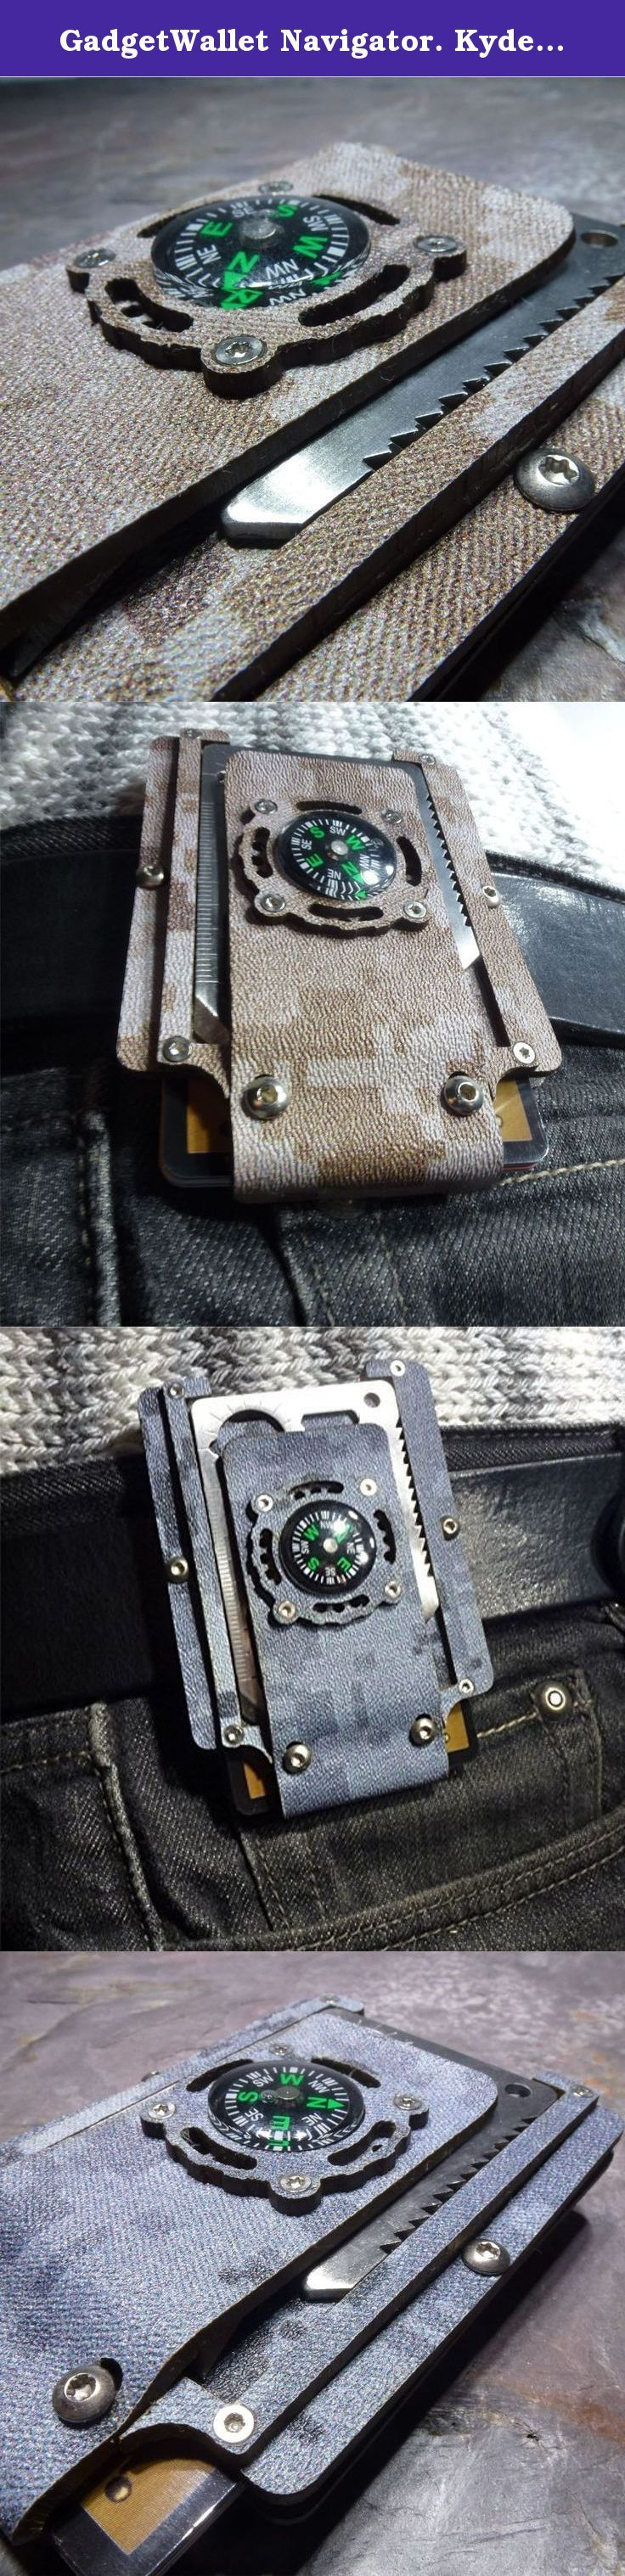 GadgetWallet Navigator. Kydex Tactical Wallet With beltclip, multitool and functional compass. GadgetWalet Compass Simplicity is the ultimate sophistication. Utilizing the flexibility of the material itself, this innovative wallet does not require rubber bands to hold it together. This GadgetWallet has a standard issue stainless steel multitool and a functional liquid filled compass. Please keep in mind that in order to get an accurate reading from the compass you will need to remove the...